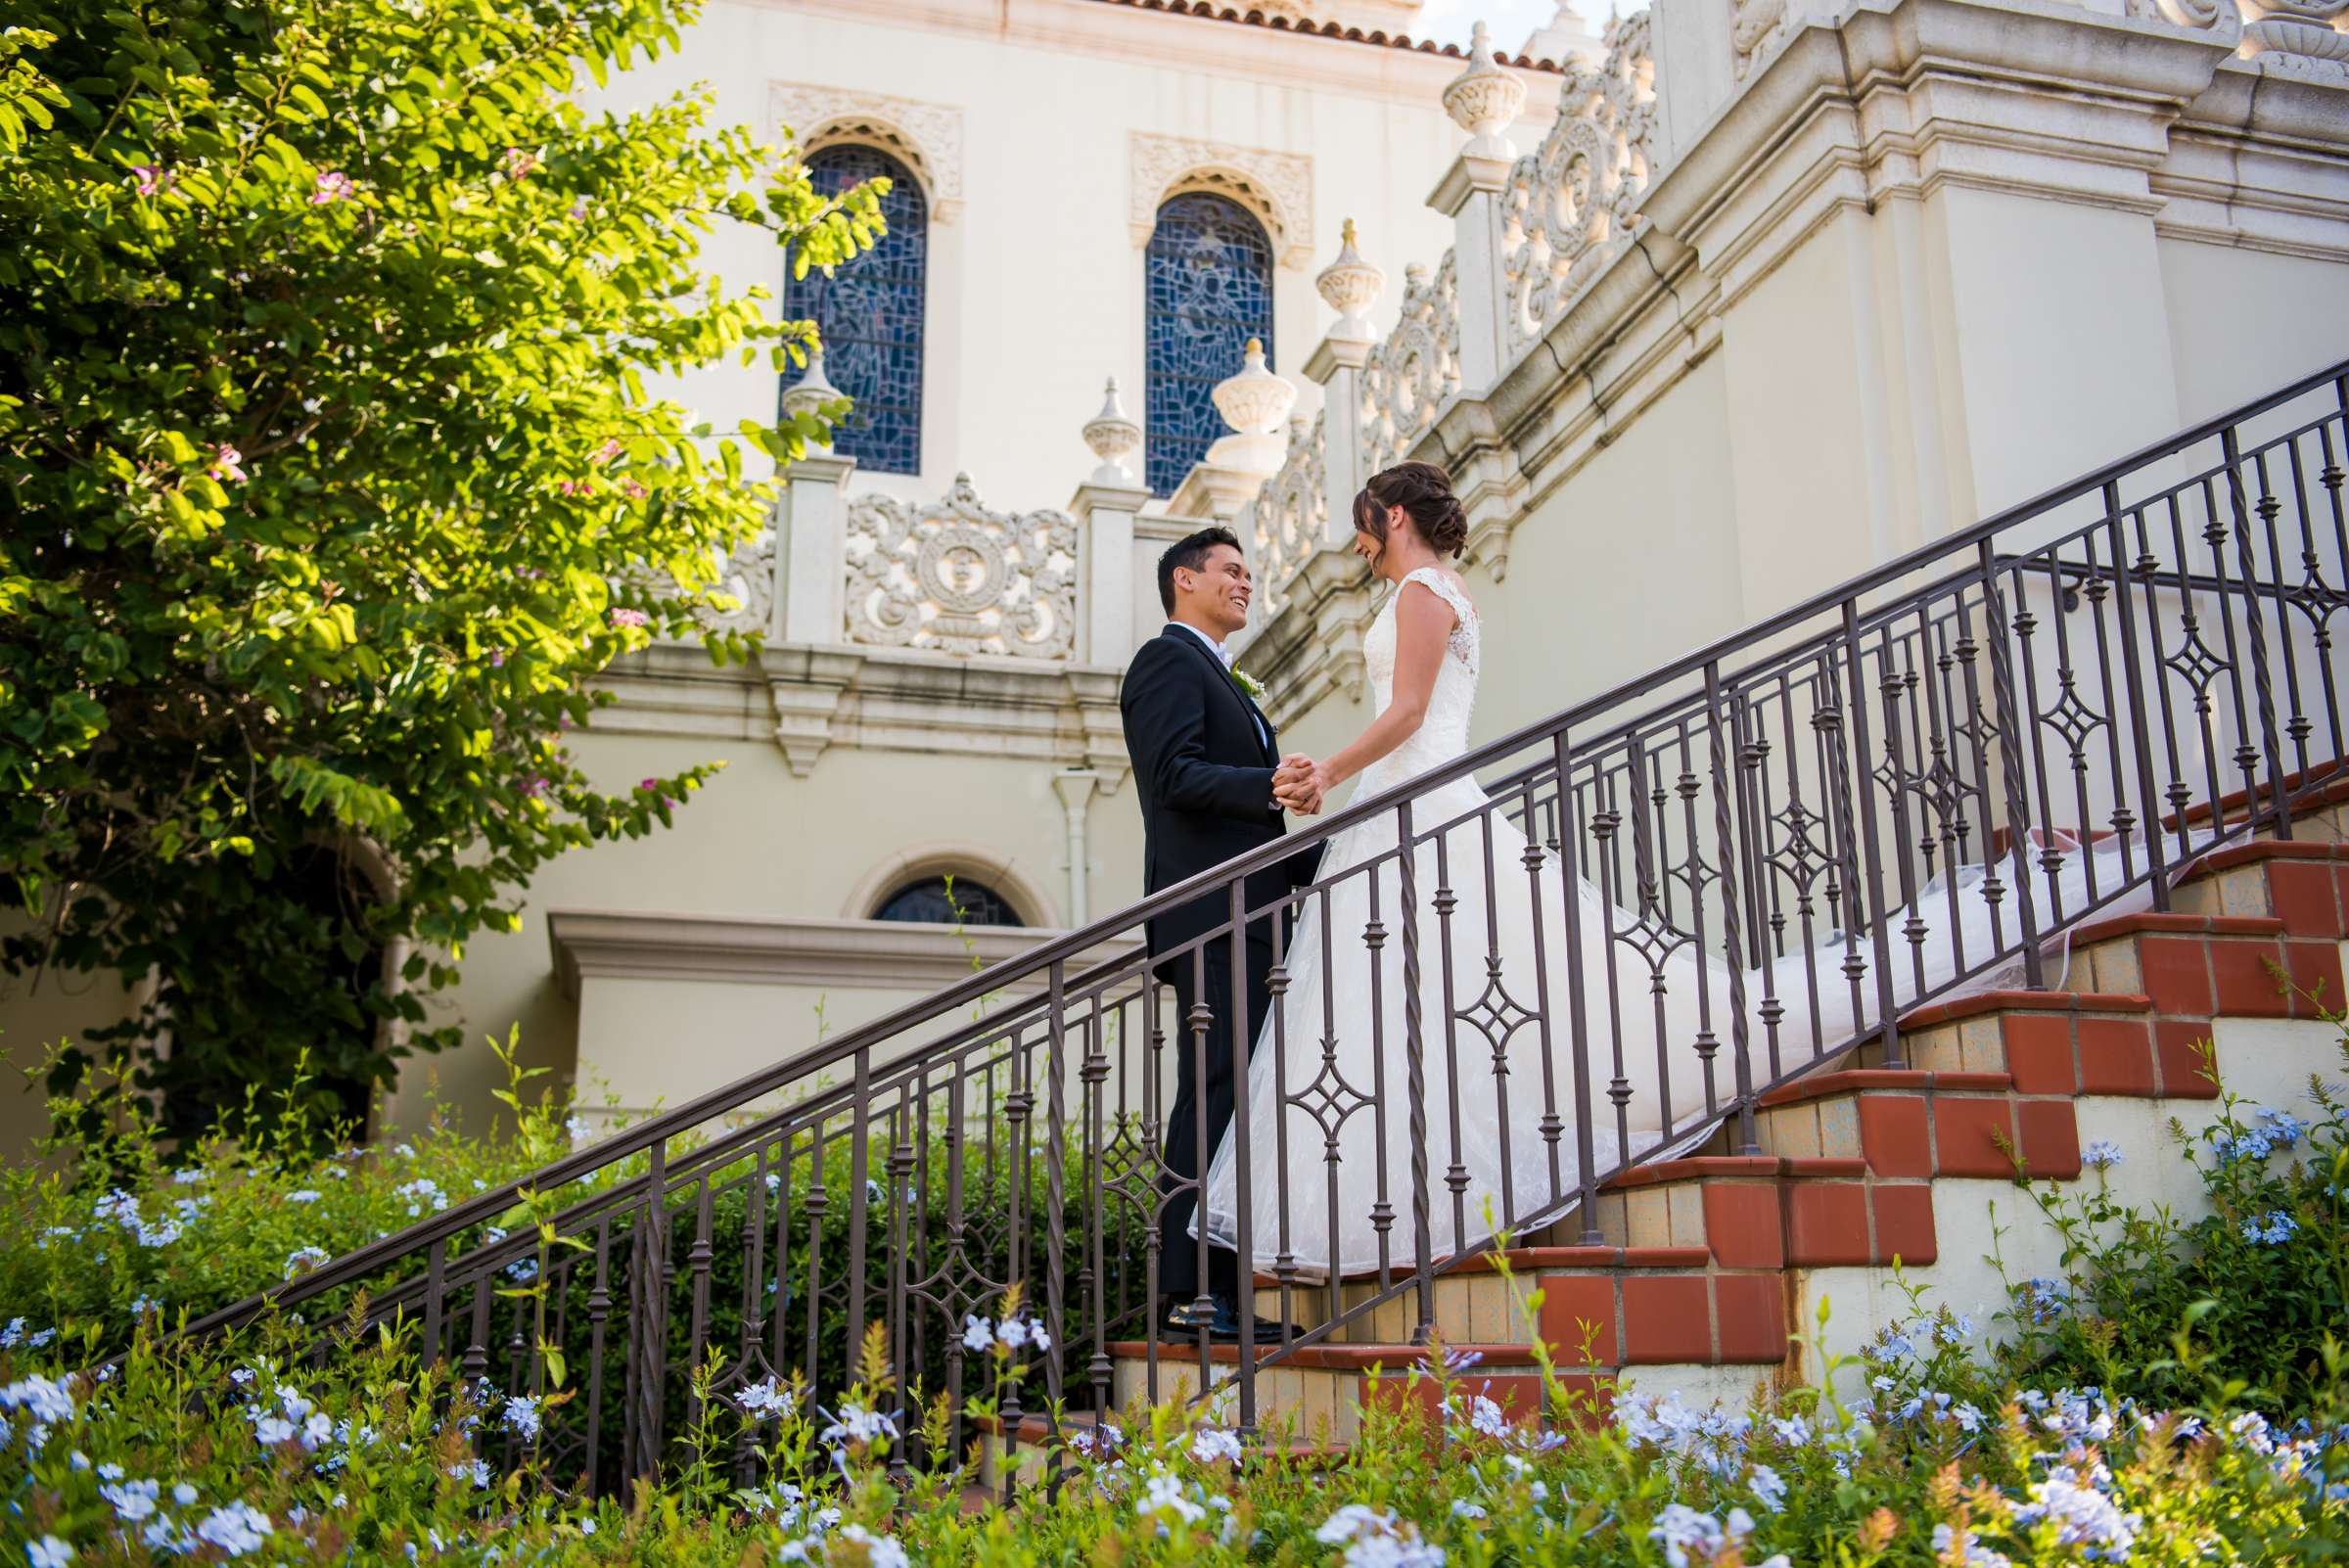 The Immaculata Wedding, Arianna and Jonah Wedding Photo #15 by True Photography